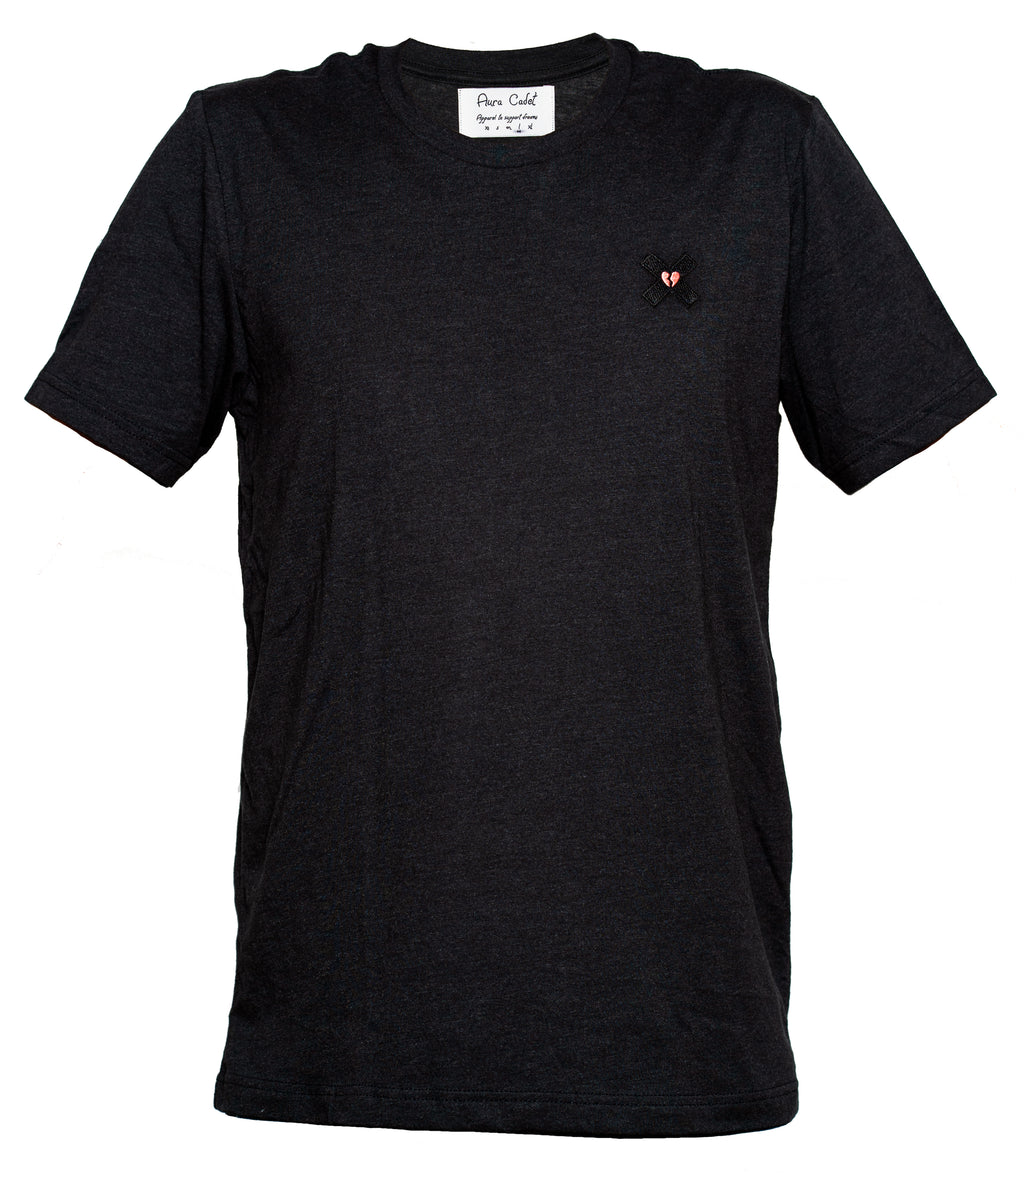 Ethereal Heather Black Tee